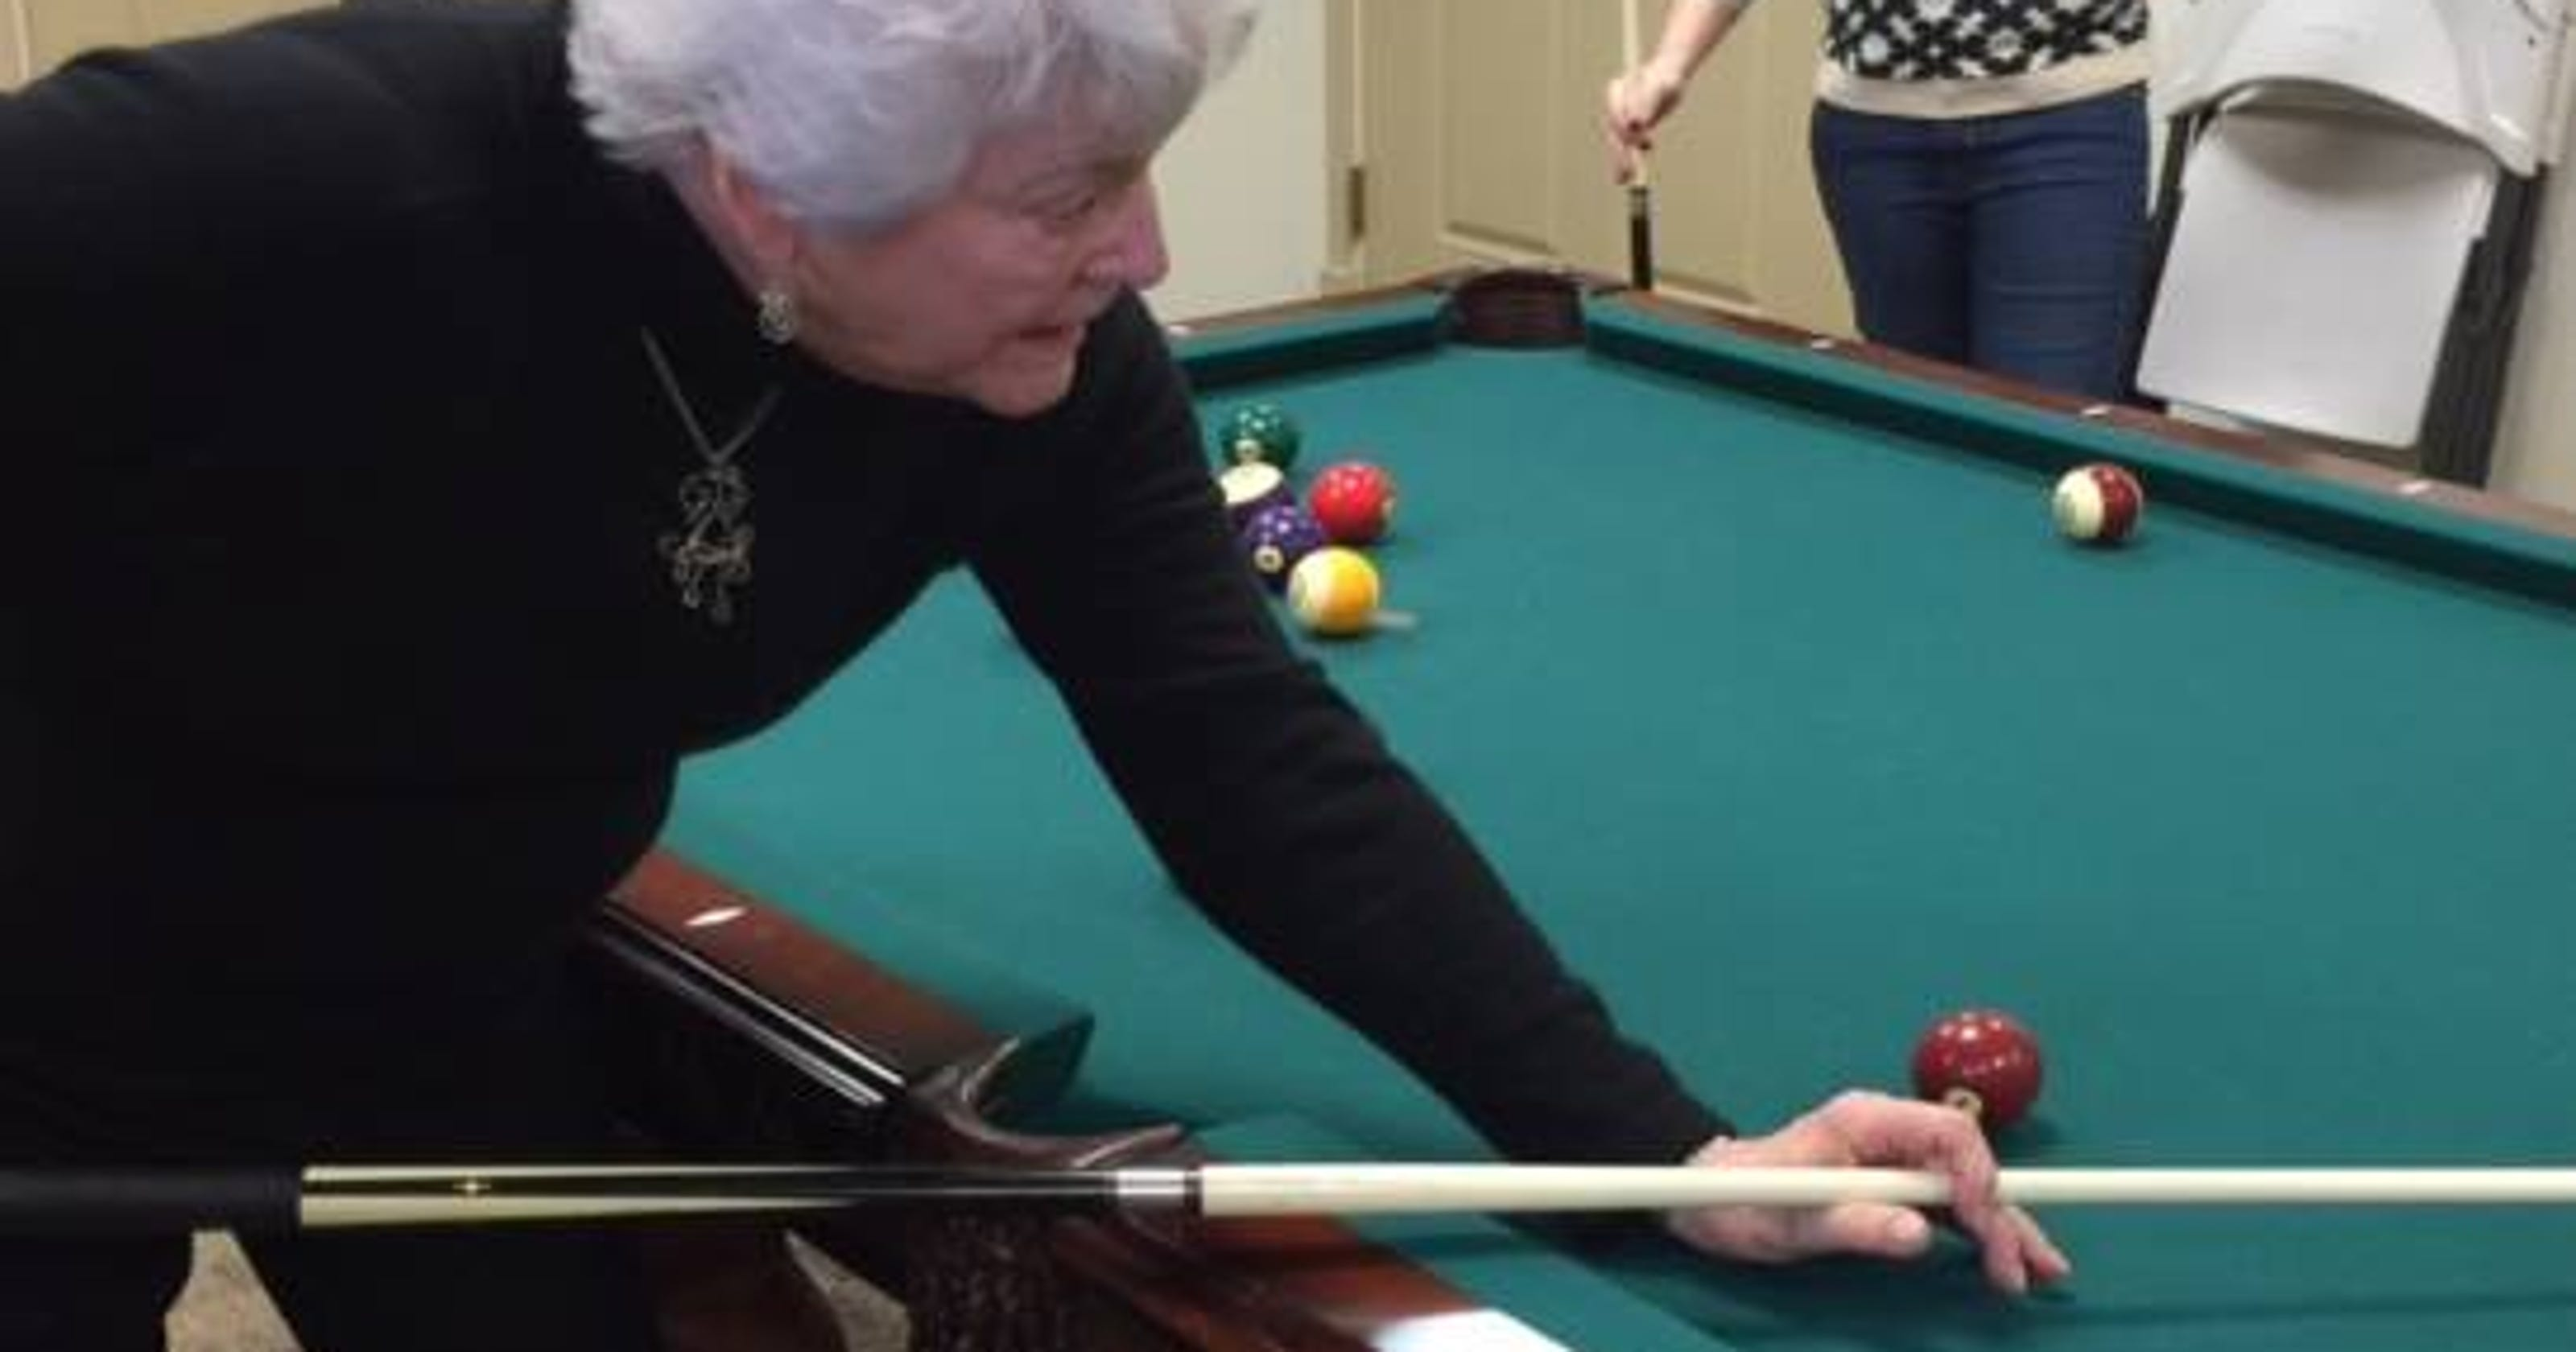 Senior Citizen Drake Student Moves Into Retirement Community - Pool table movers des moines